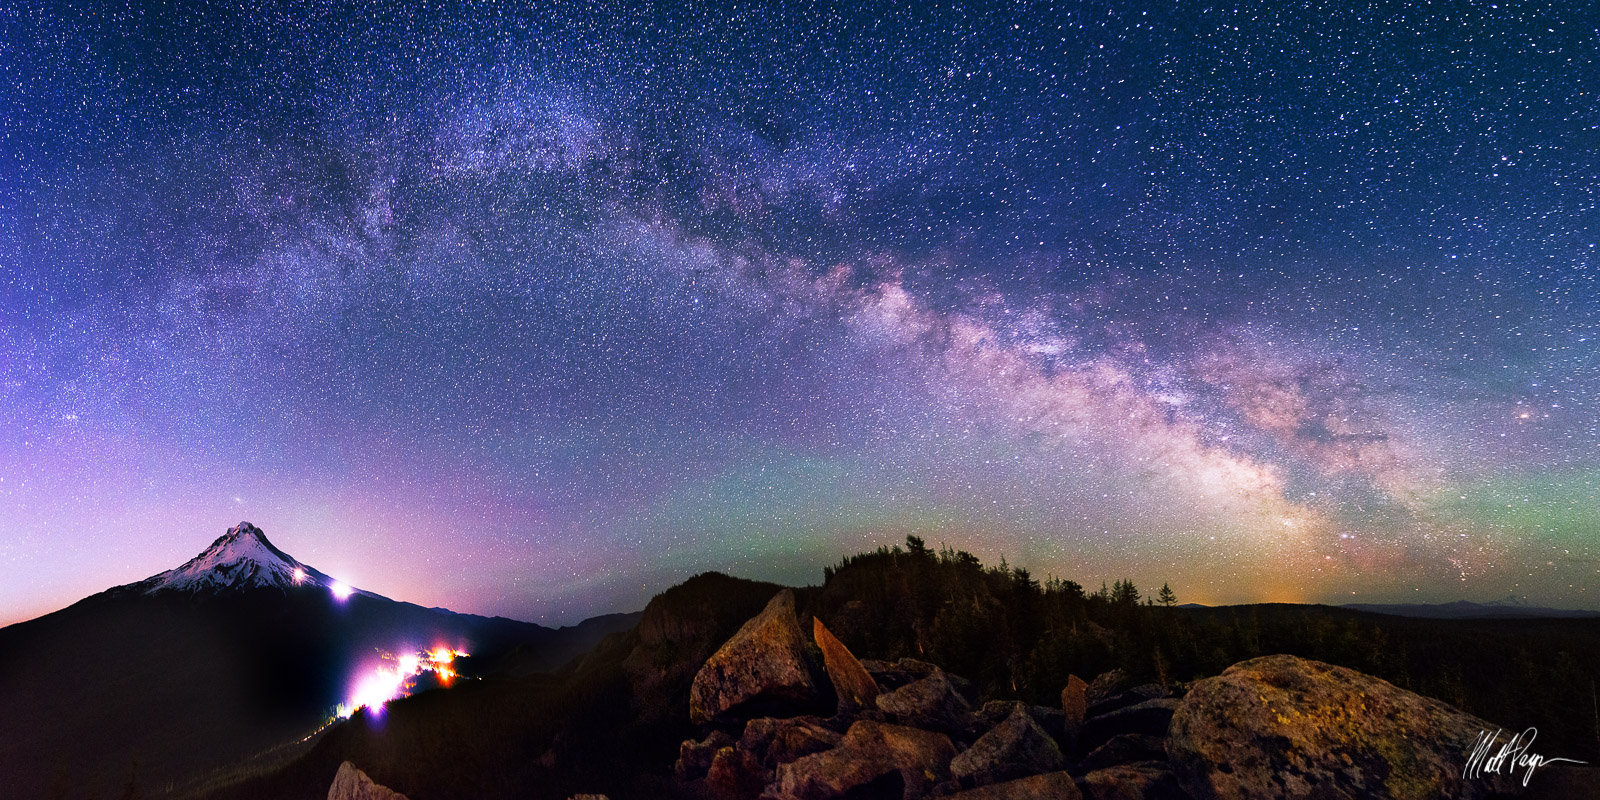 Government Camp, Milky Way, Mount Hood, Mount Jefferson, Mountains, Night, Oregon, Panorama, Portland, Rocks, Stars, photo